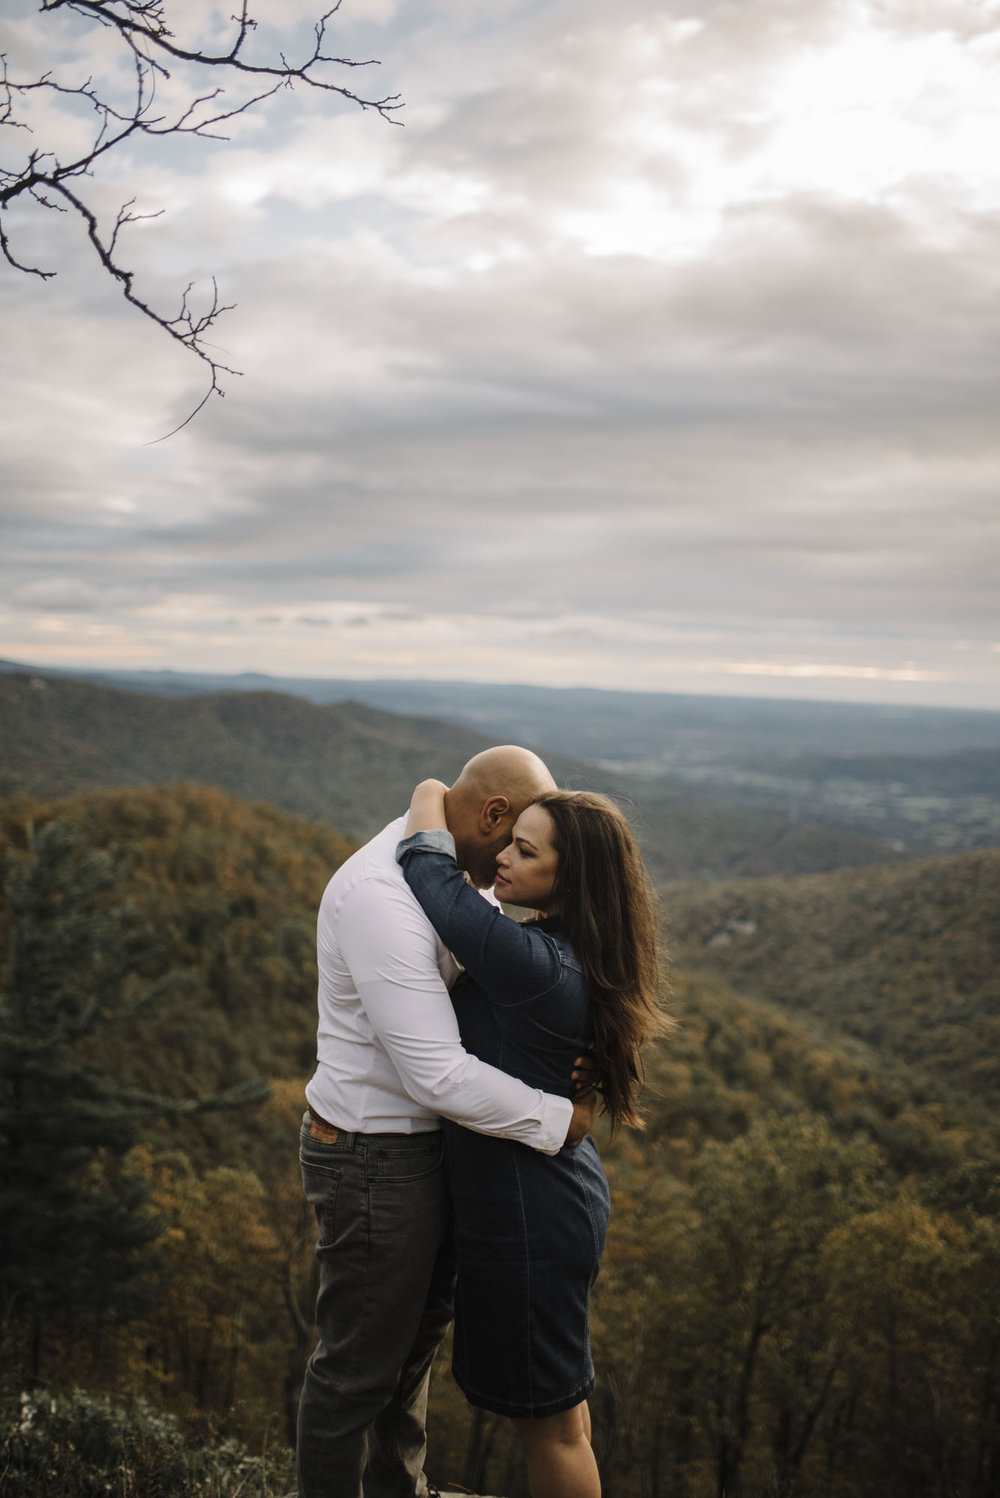 Shenandoah National Park Engagement Session - Shenandoah National Park Elopement Photographer - Virginia Adventure Photographer - Blue Ridge Parkway Elopement Photographer_21.jpg